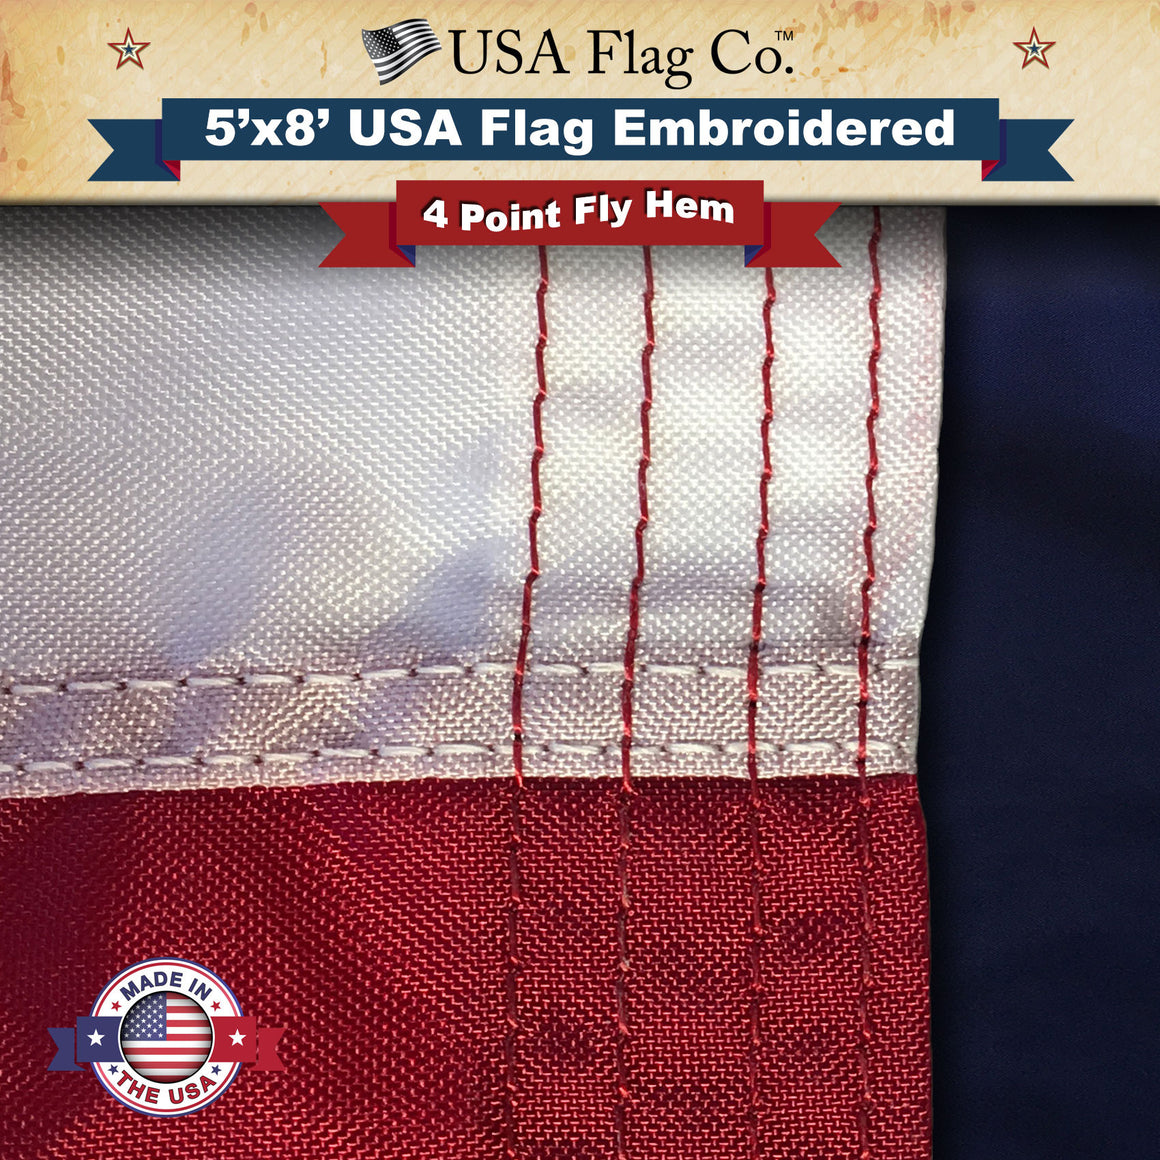 Embroudered American Flags